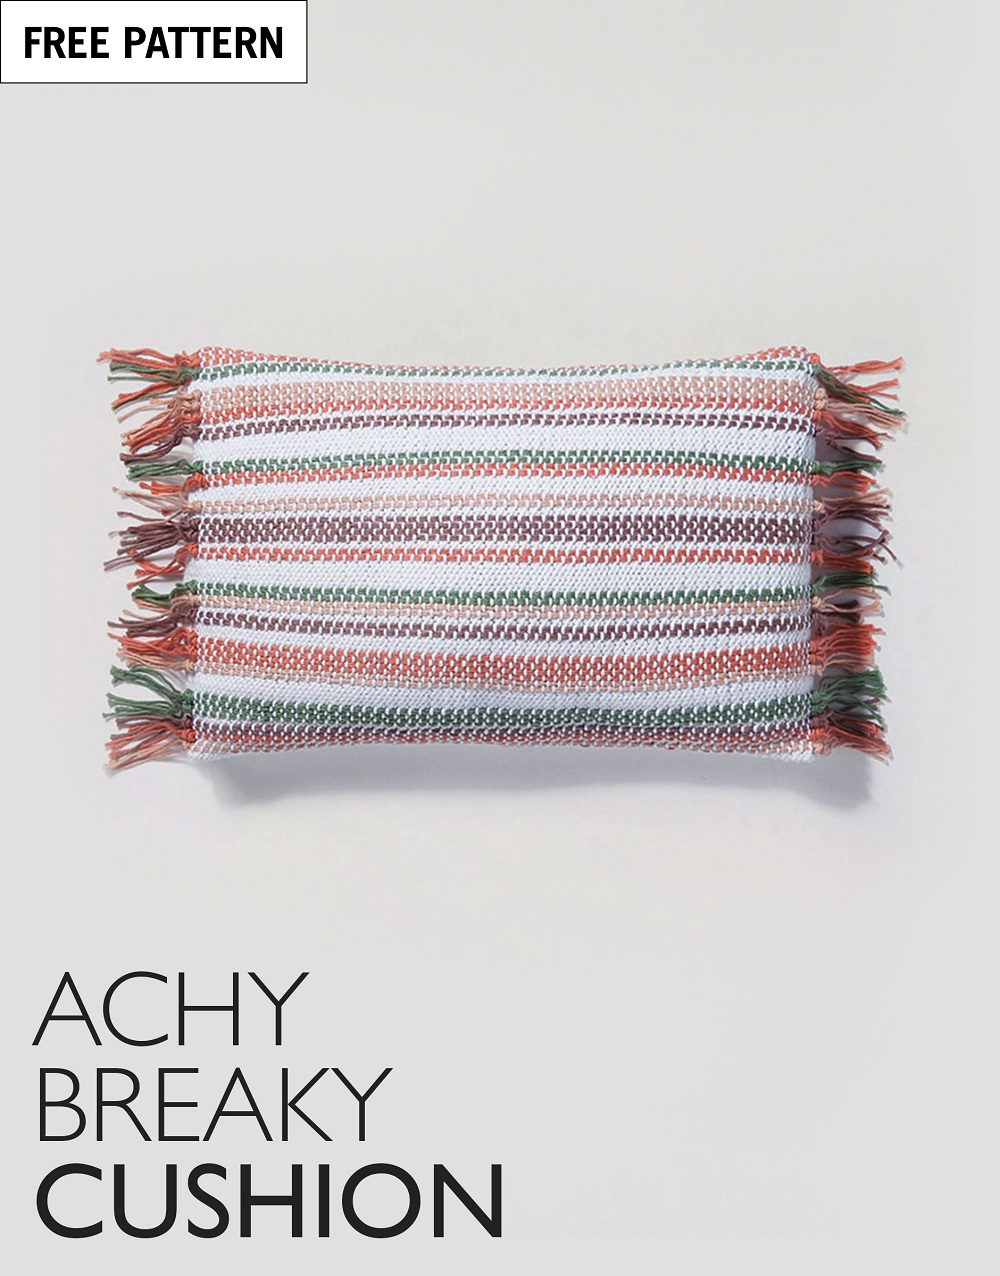 Free pattern index achy breaky